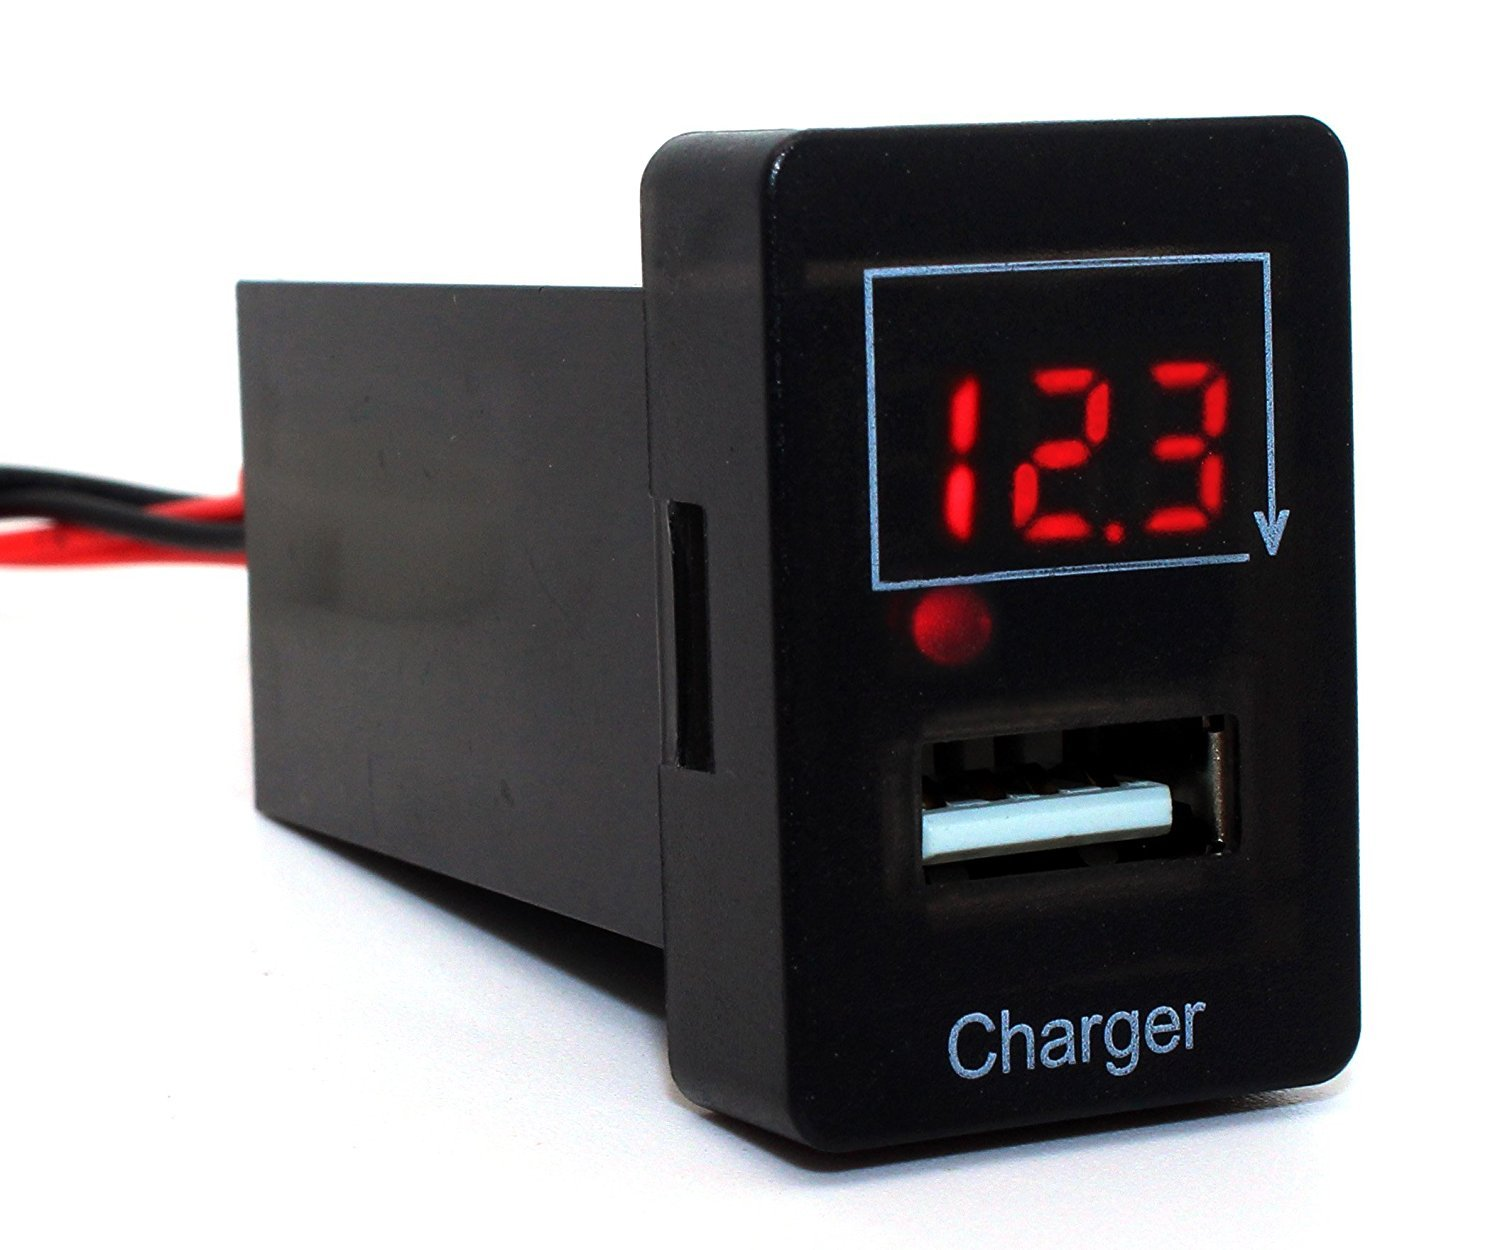 Power To It And Measuring 5 V Between Any Of The Red Wires And Any Of